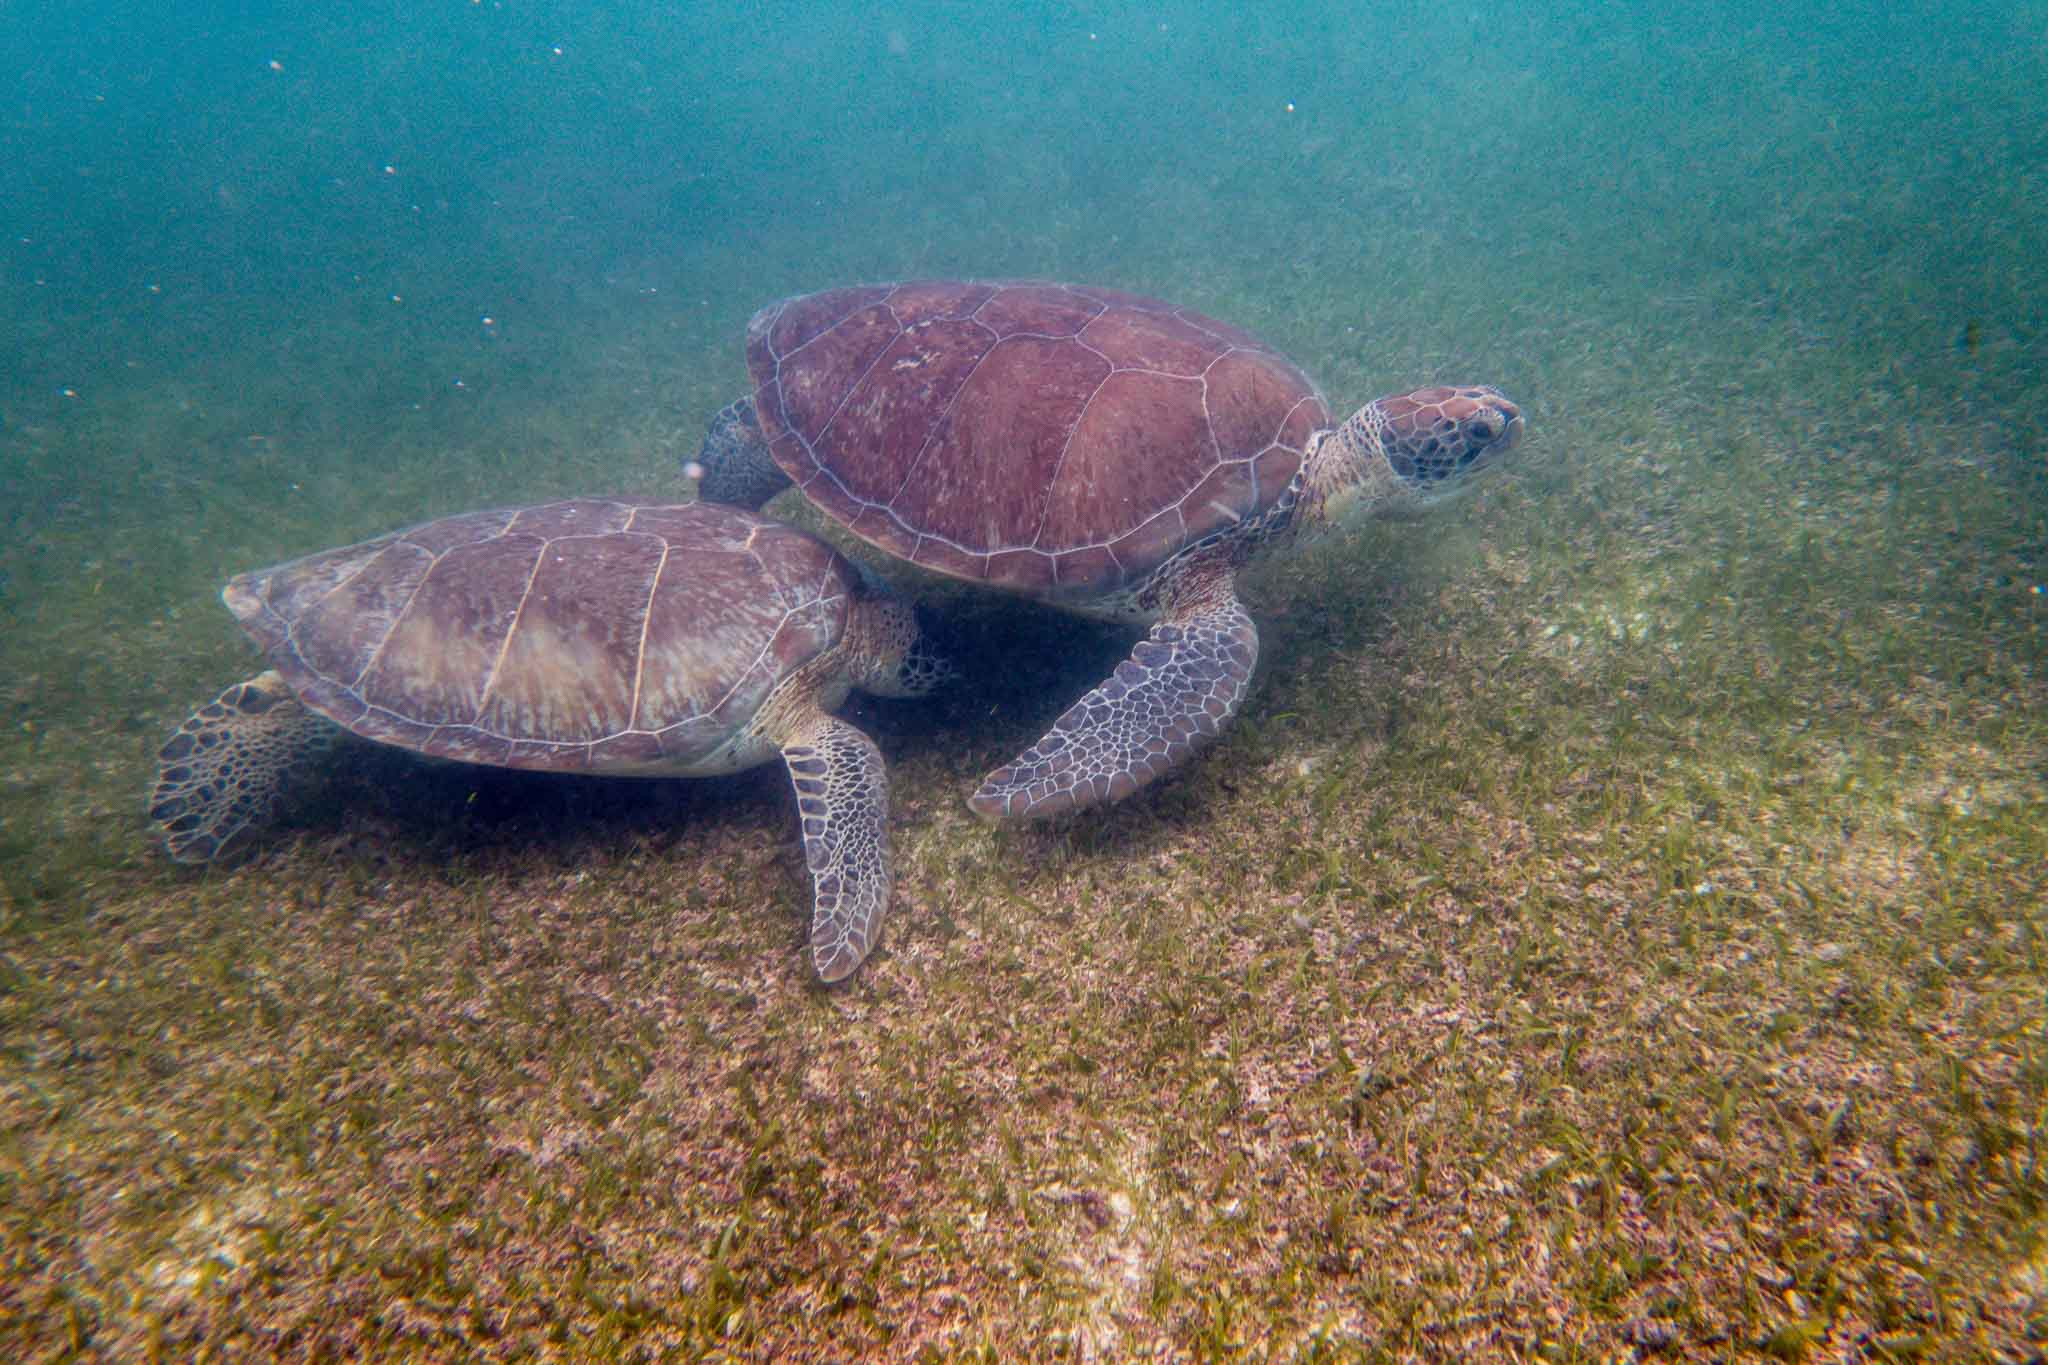 We found these two Green Sea Turtles in Akumal Bay while snorkeling. The Akumal Beach snorkeling is only one of the reasons to visit this protected bay.